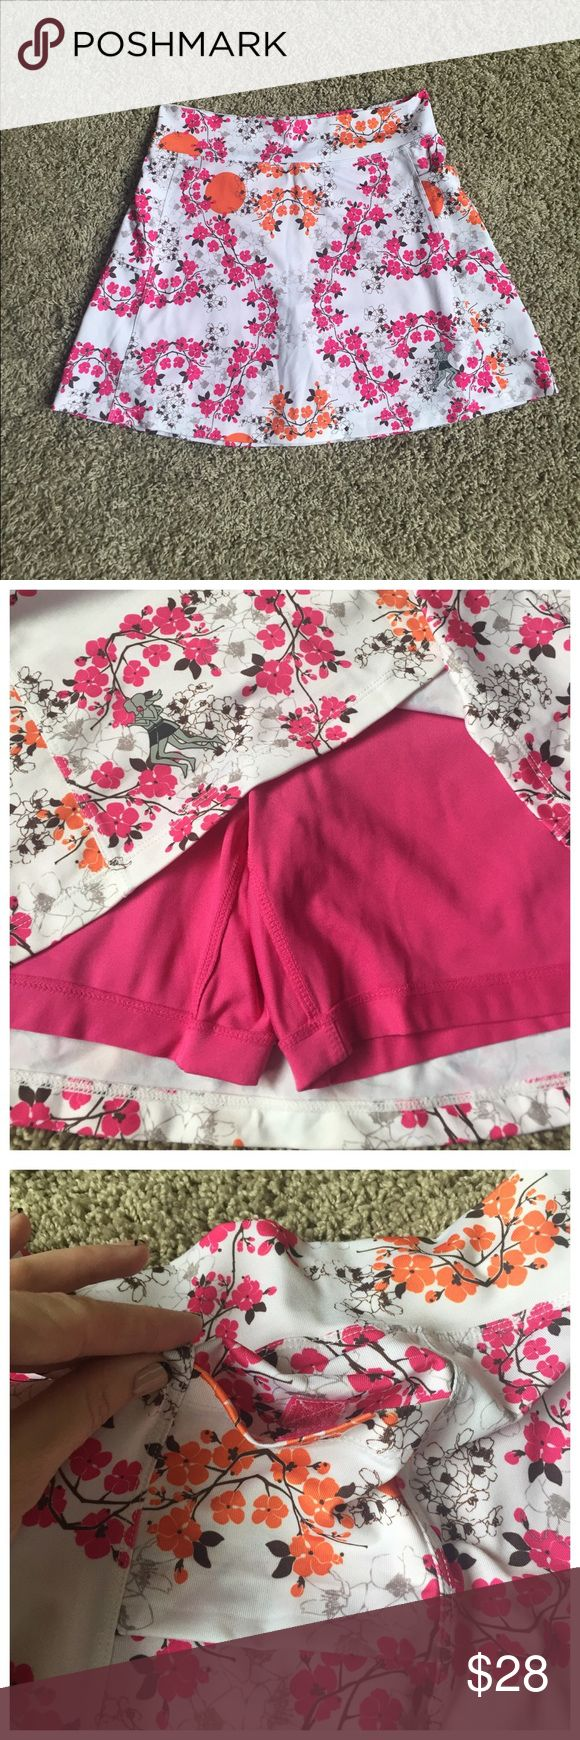 """Running Skirts Cherry Blossom Print Athletic Skirt Bright pink, orange, and chocolate print on white background.  Underneath are bright pink compression shorts.  There are 2 roomy pockets at the hip with Velcro closure (see photo).  Length approx. 15"""".  Skirt is listed as Size 2, which according to sizing chart for Running Skirts is a waist measurement of 27-28"""" and women's pants size 4-6.  Worn a few times, excellent used condition. Running Skirts Shorts Skorts"""